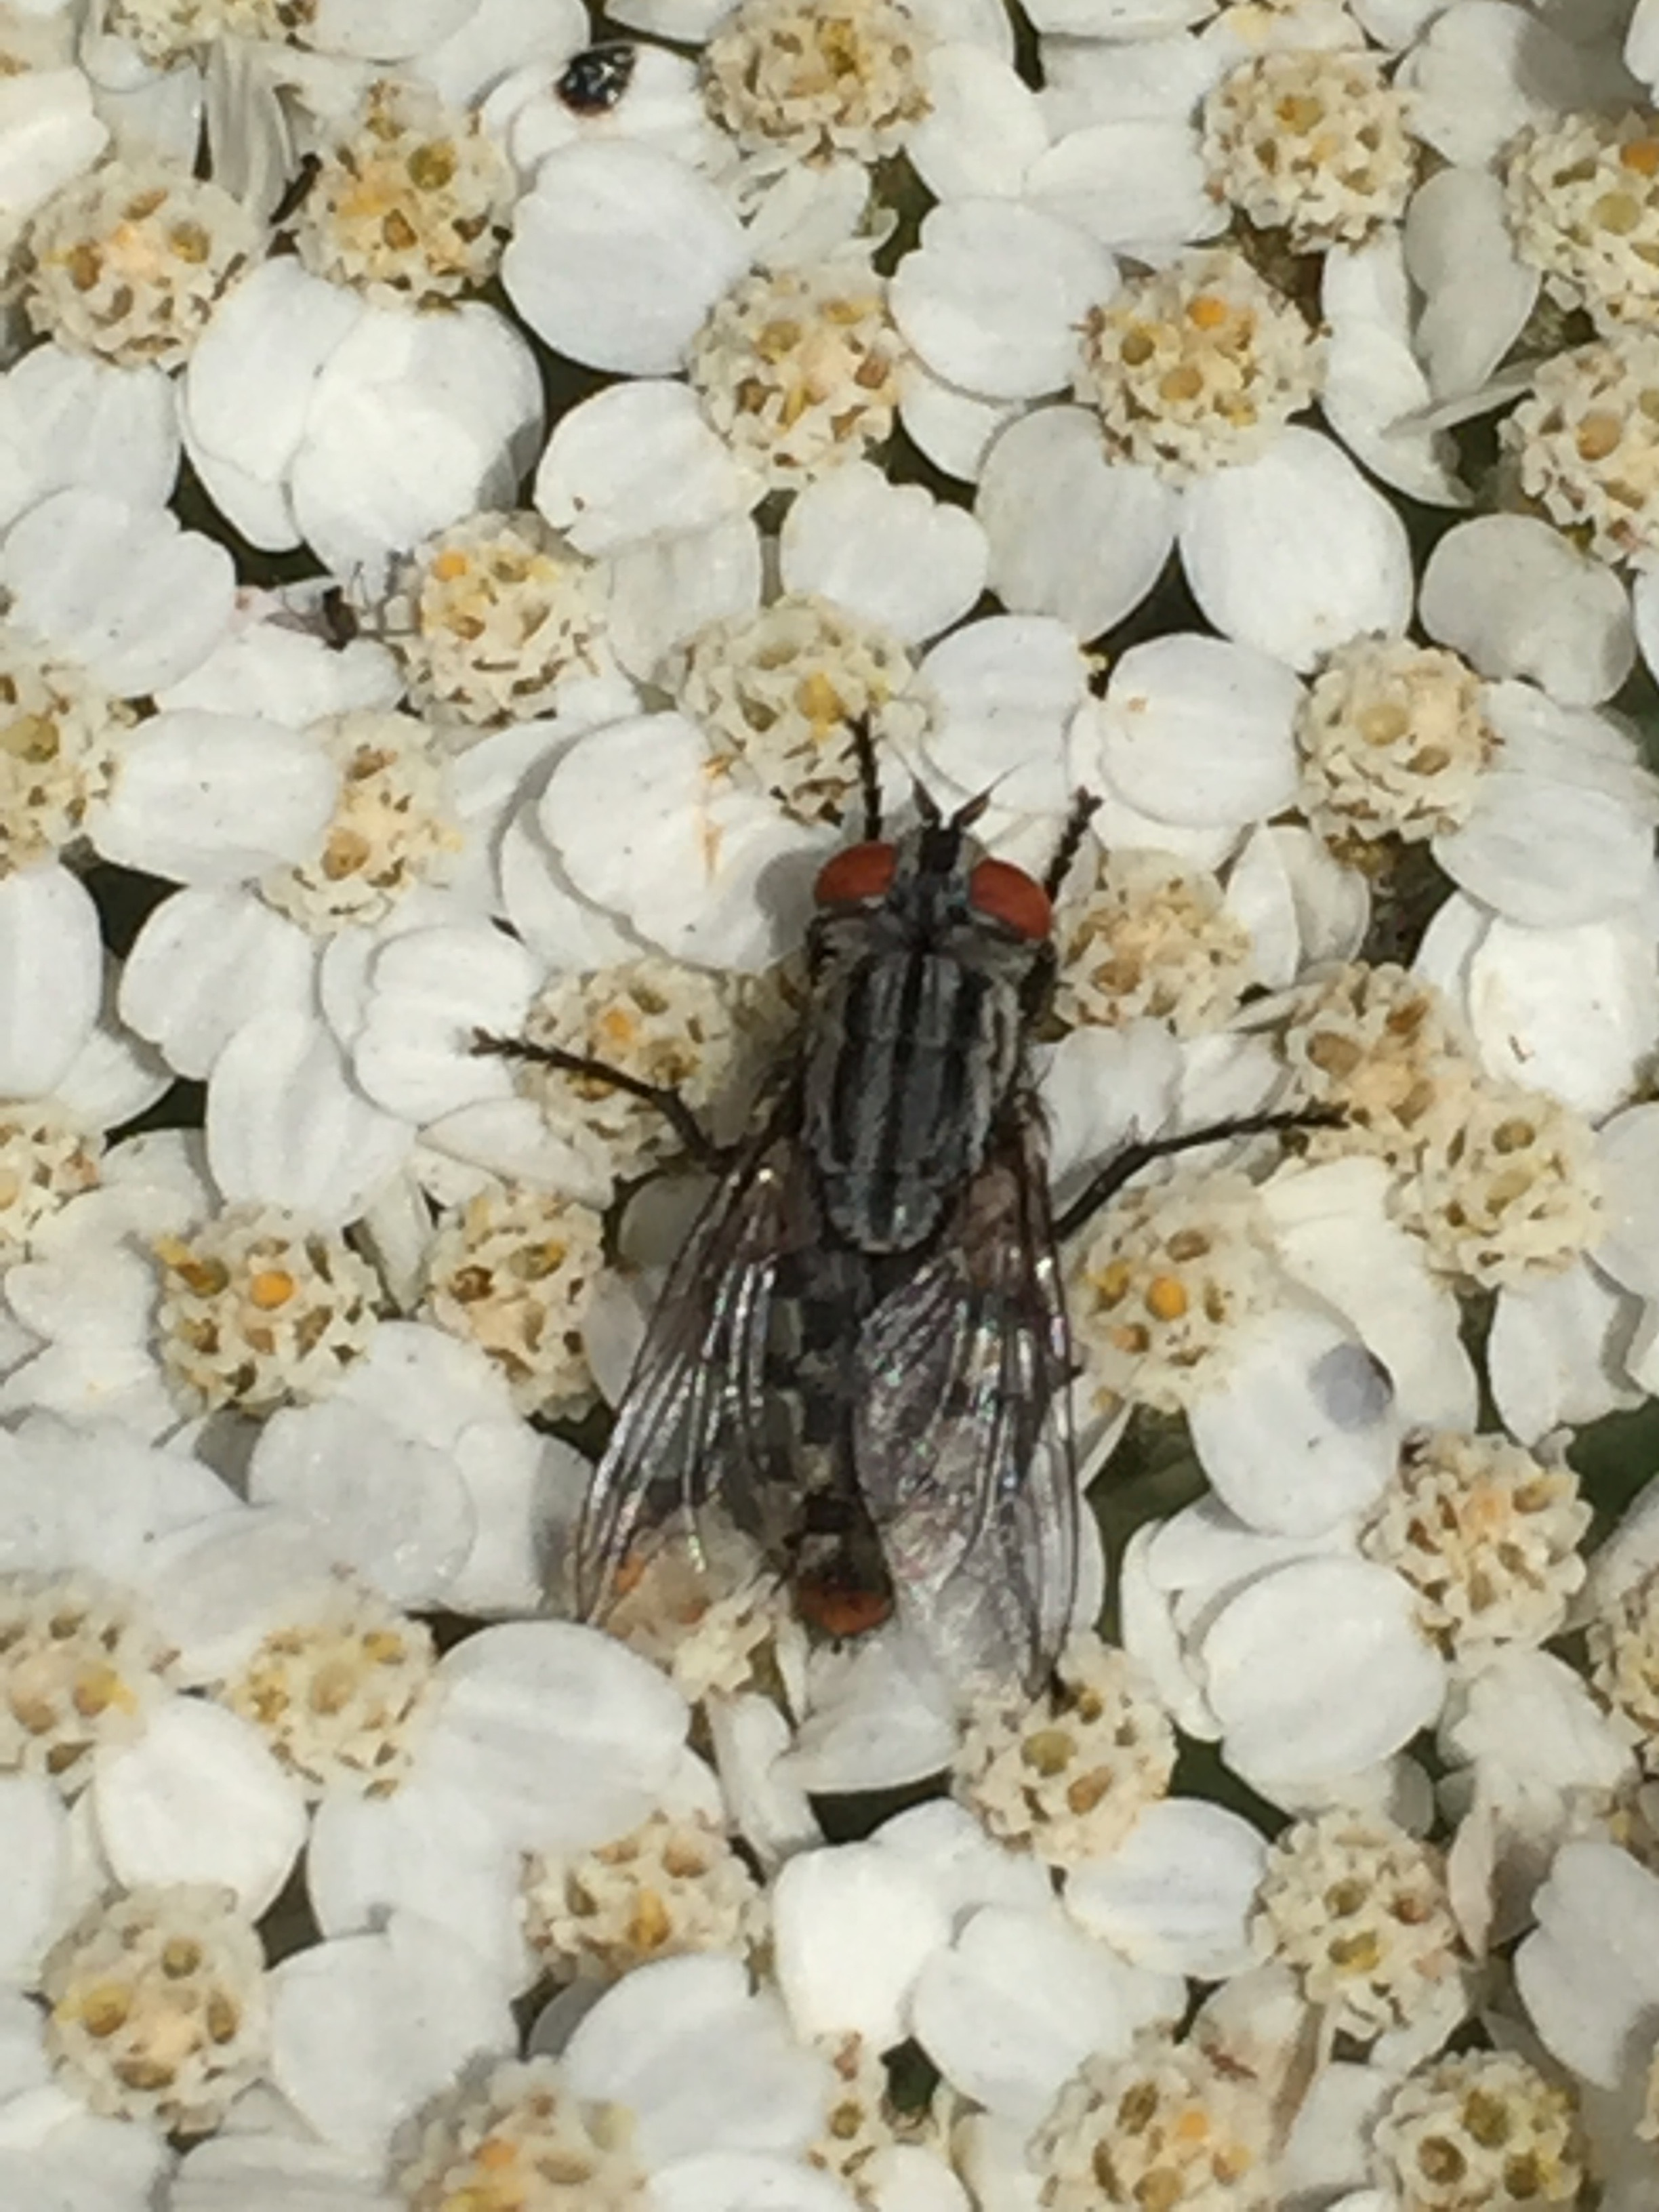 A flesh fly. Yeah, it eats what you think it eats. It's a natural composter!